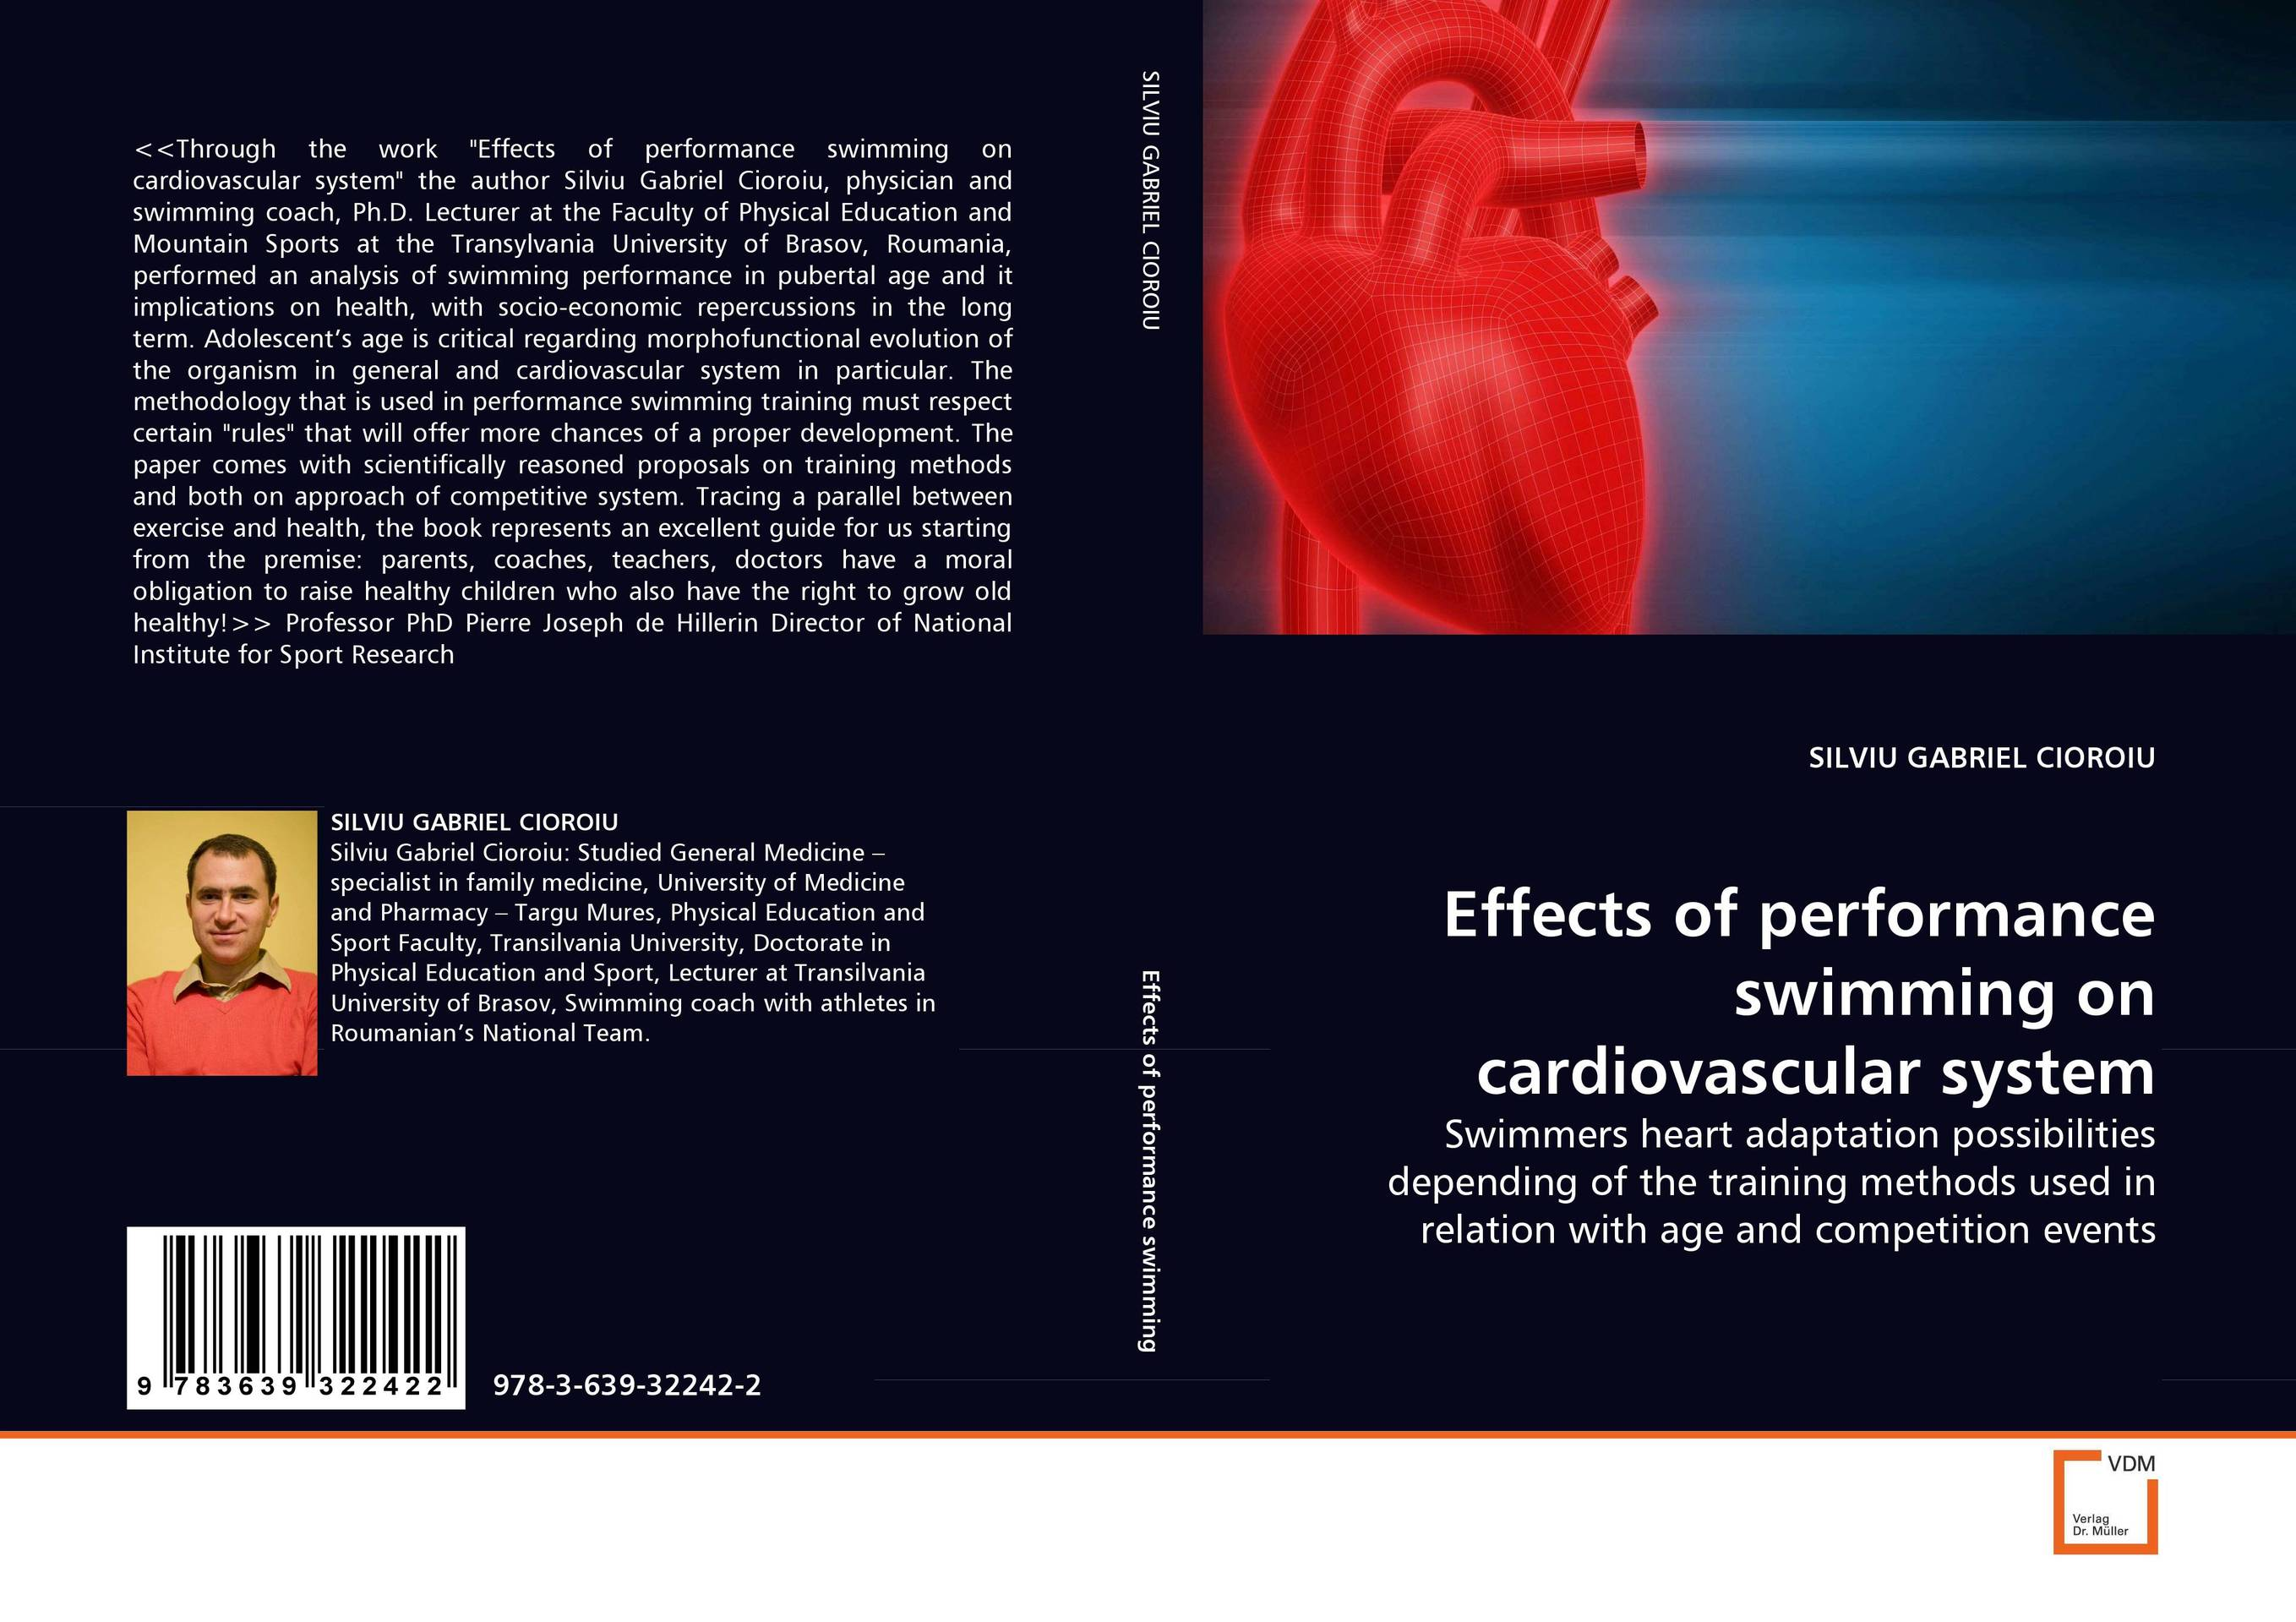 Effects of performance swimming on cardiovascular system 5 bottles 500pills diabetes treatment radix rehmannia extract effects on central nervous system and cardiovascular function